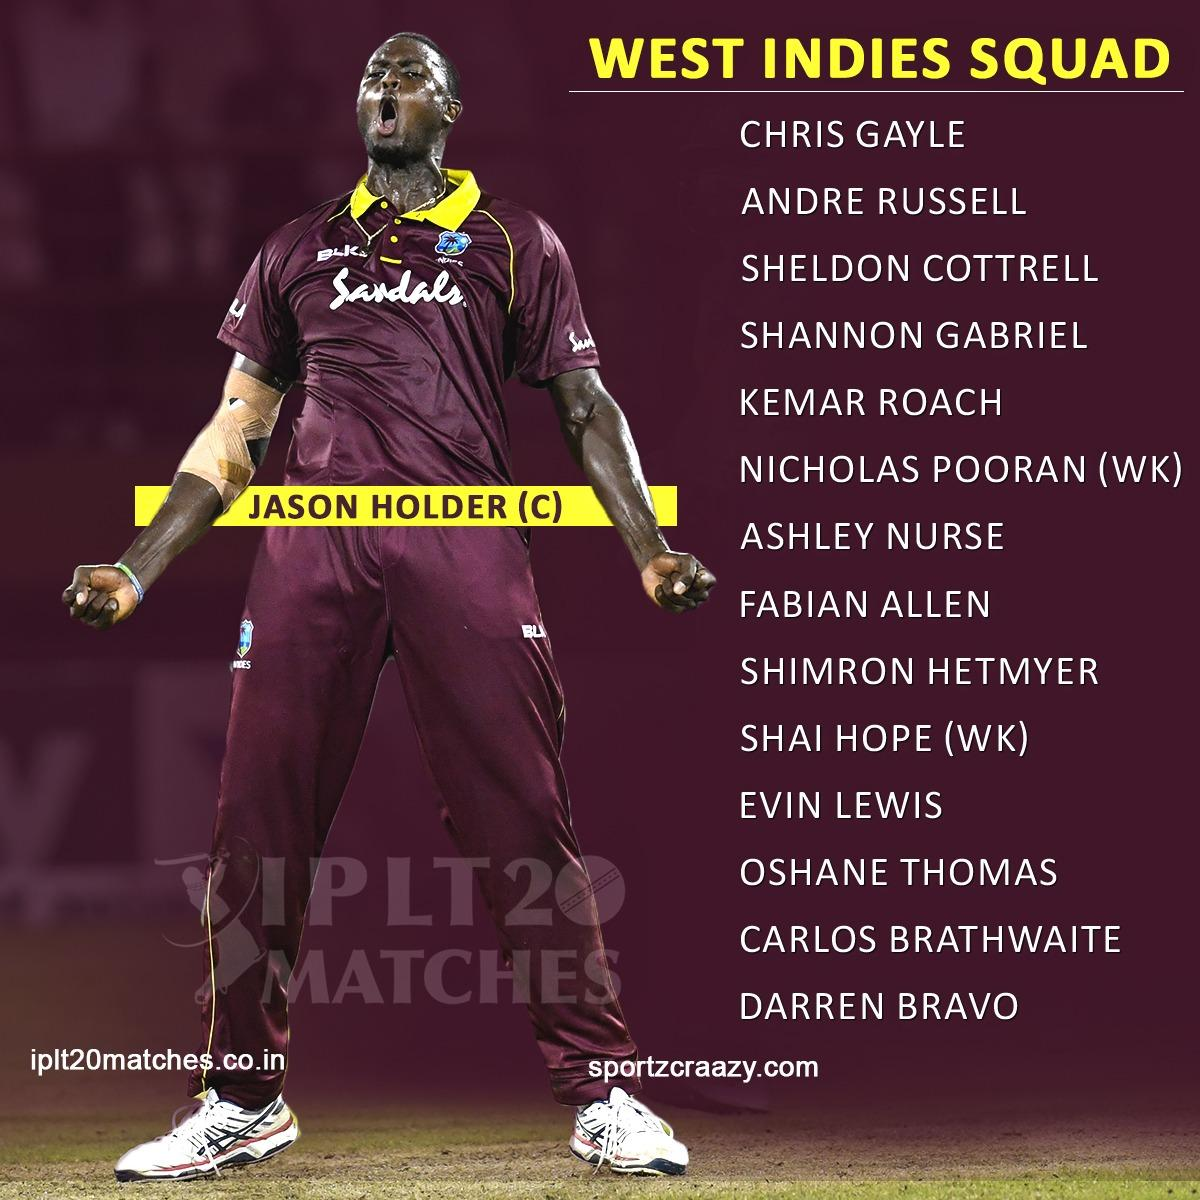 BREAKING: @windiescricket name their #CWC19 squad!  #sportzcraazy #WorldCup2019 #Windies #WindiesCricketTeam #Teams #CWC #Players #Matches #Squad #WorldCup